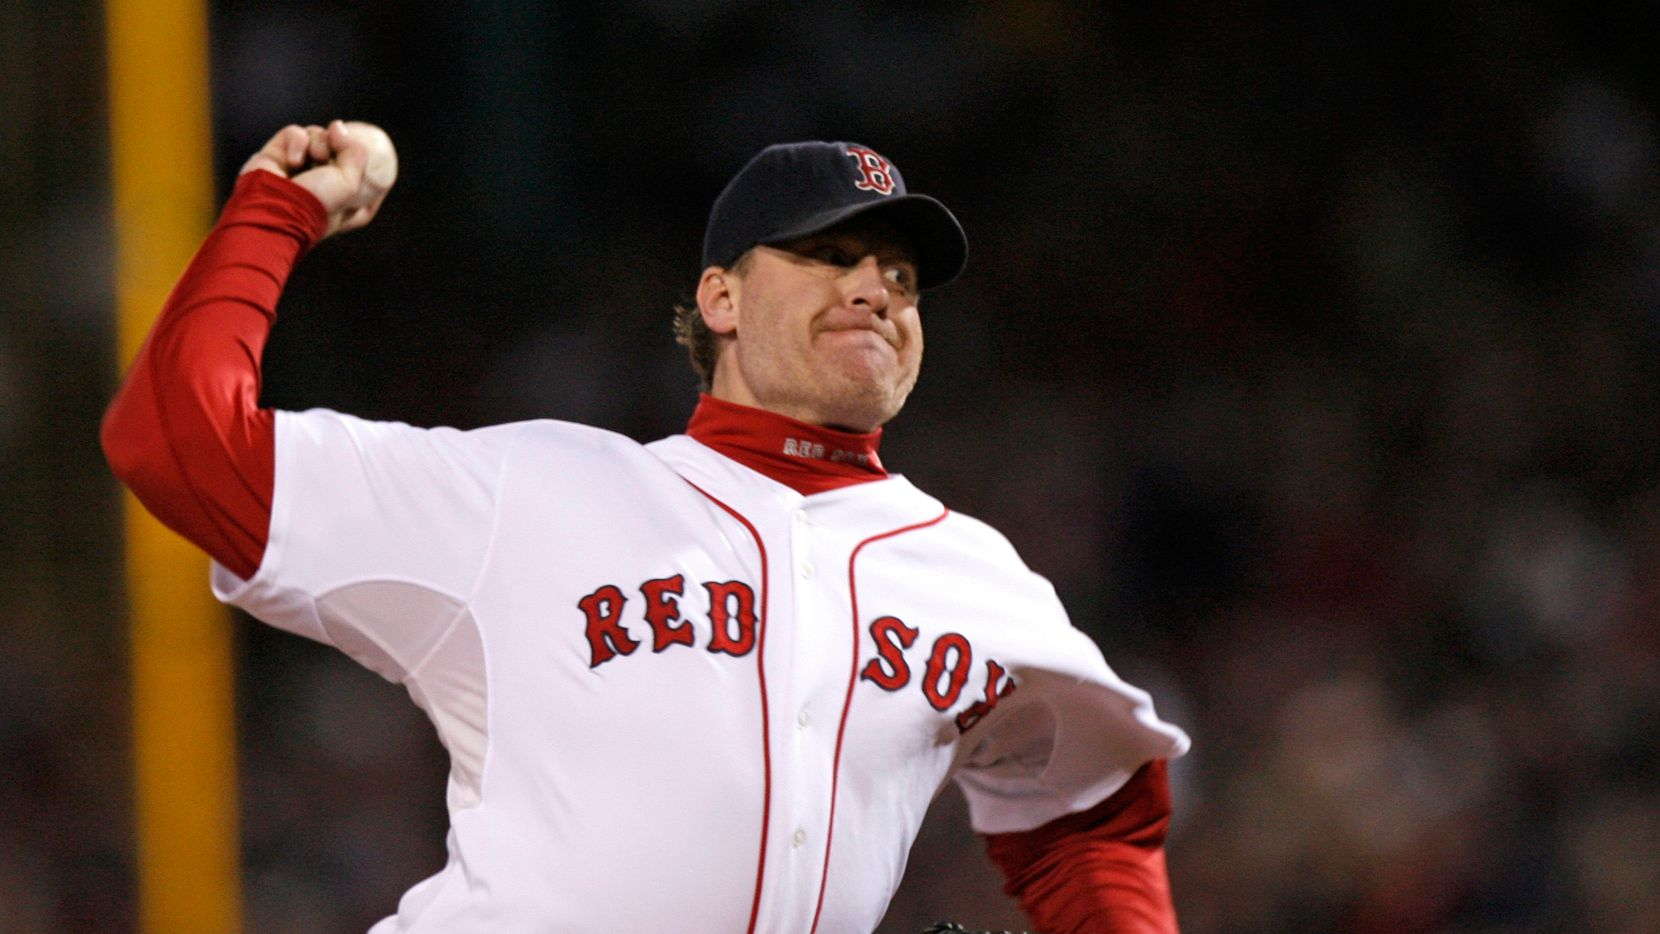 In this Oct. 25, 2007, file photo, Boston Red Sox's Curt Schilling pitches against the Colorado Rockies in Game 2 of the baseball World Series at Fenway Park in Boston. Like many baseball writers, C. Trent Rosecrans viewed the Hall of Fame vote as a labor of love. The results of the 2021 vote will be announced Tuesday, Jan. 26, 2021, and Rosecrans was not alone in finding the task particularly agonizing this time around. With Schilling's candidacy now front and center — and Barry Bonds and Roger Clemens still on the ballot as well — voters have had to consider how much a player's off-field behavior should affect his Hall of Fame chances.